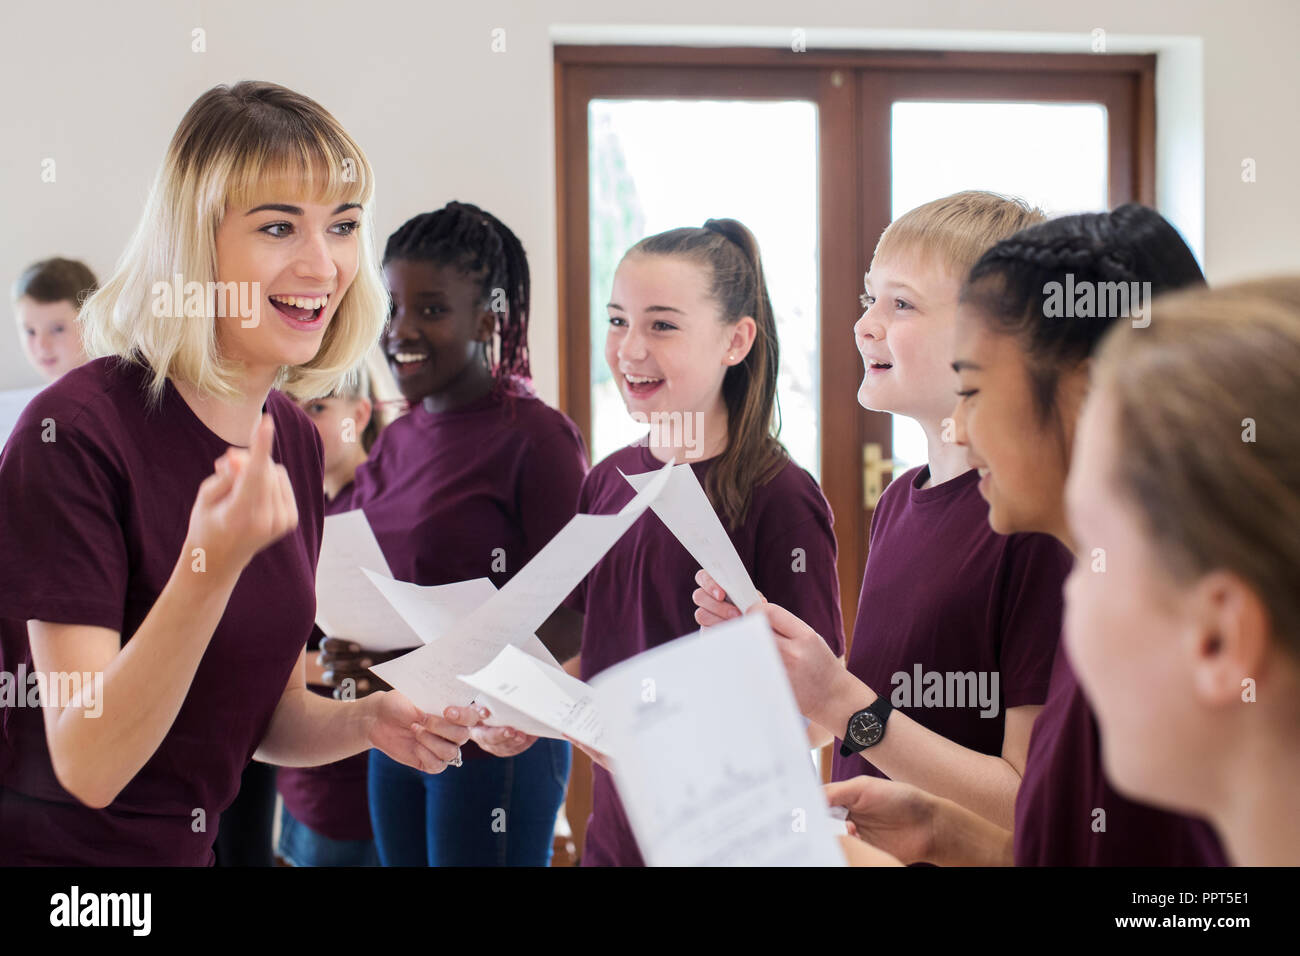 Children In School Choir Being Encouraged By Teacher - Stock Image